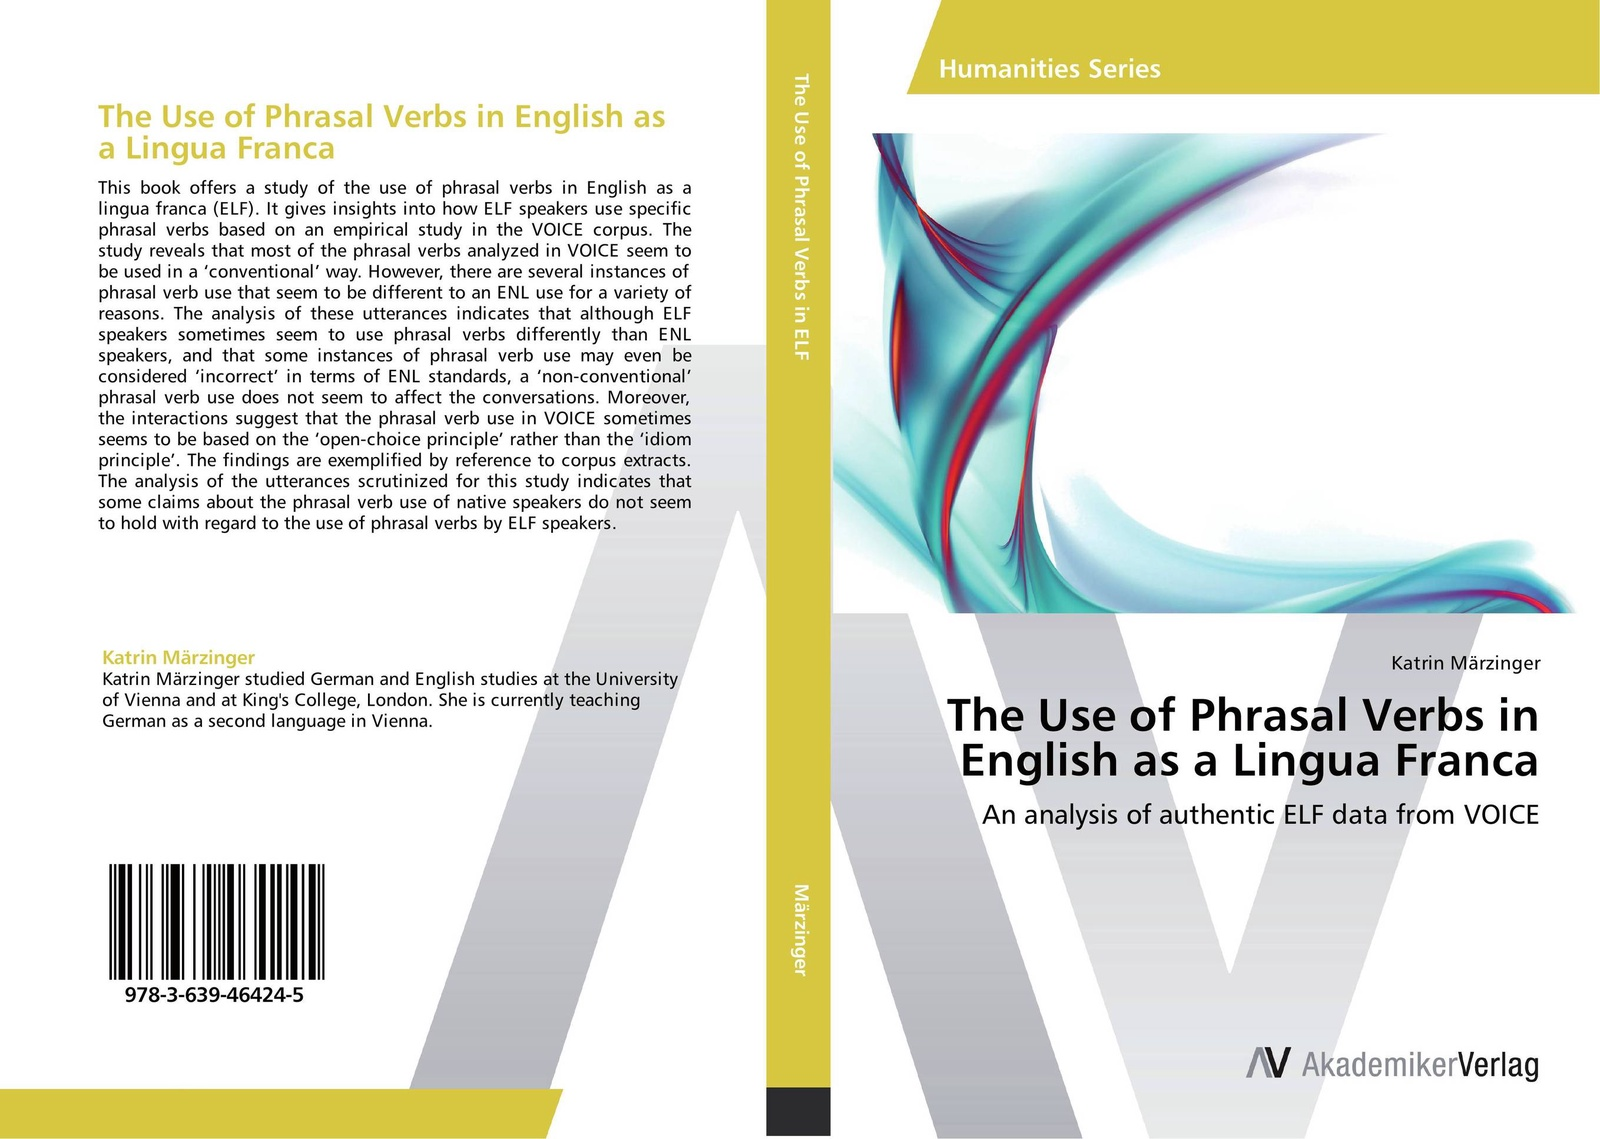 Katrin Märzinger The Use of Phrasal Verbs in English as a Lingua Franca the love verb